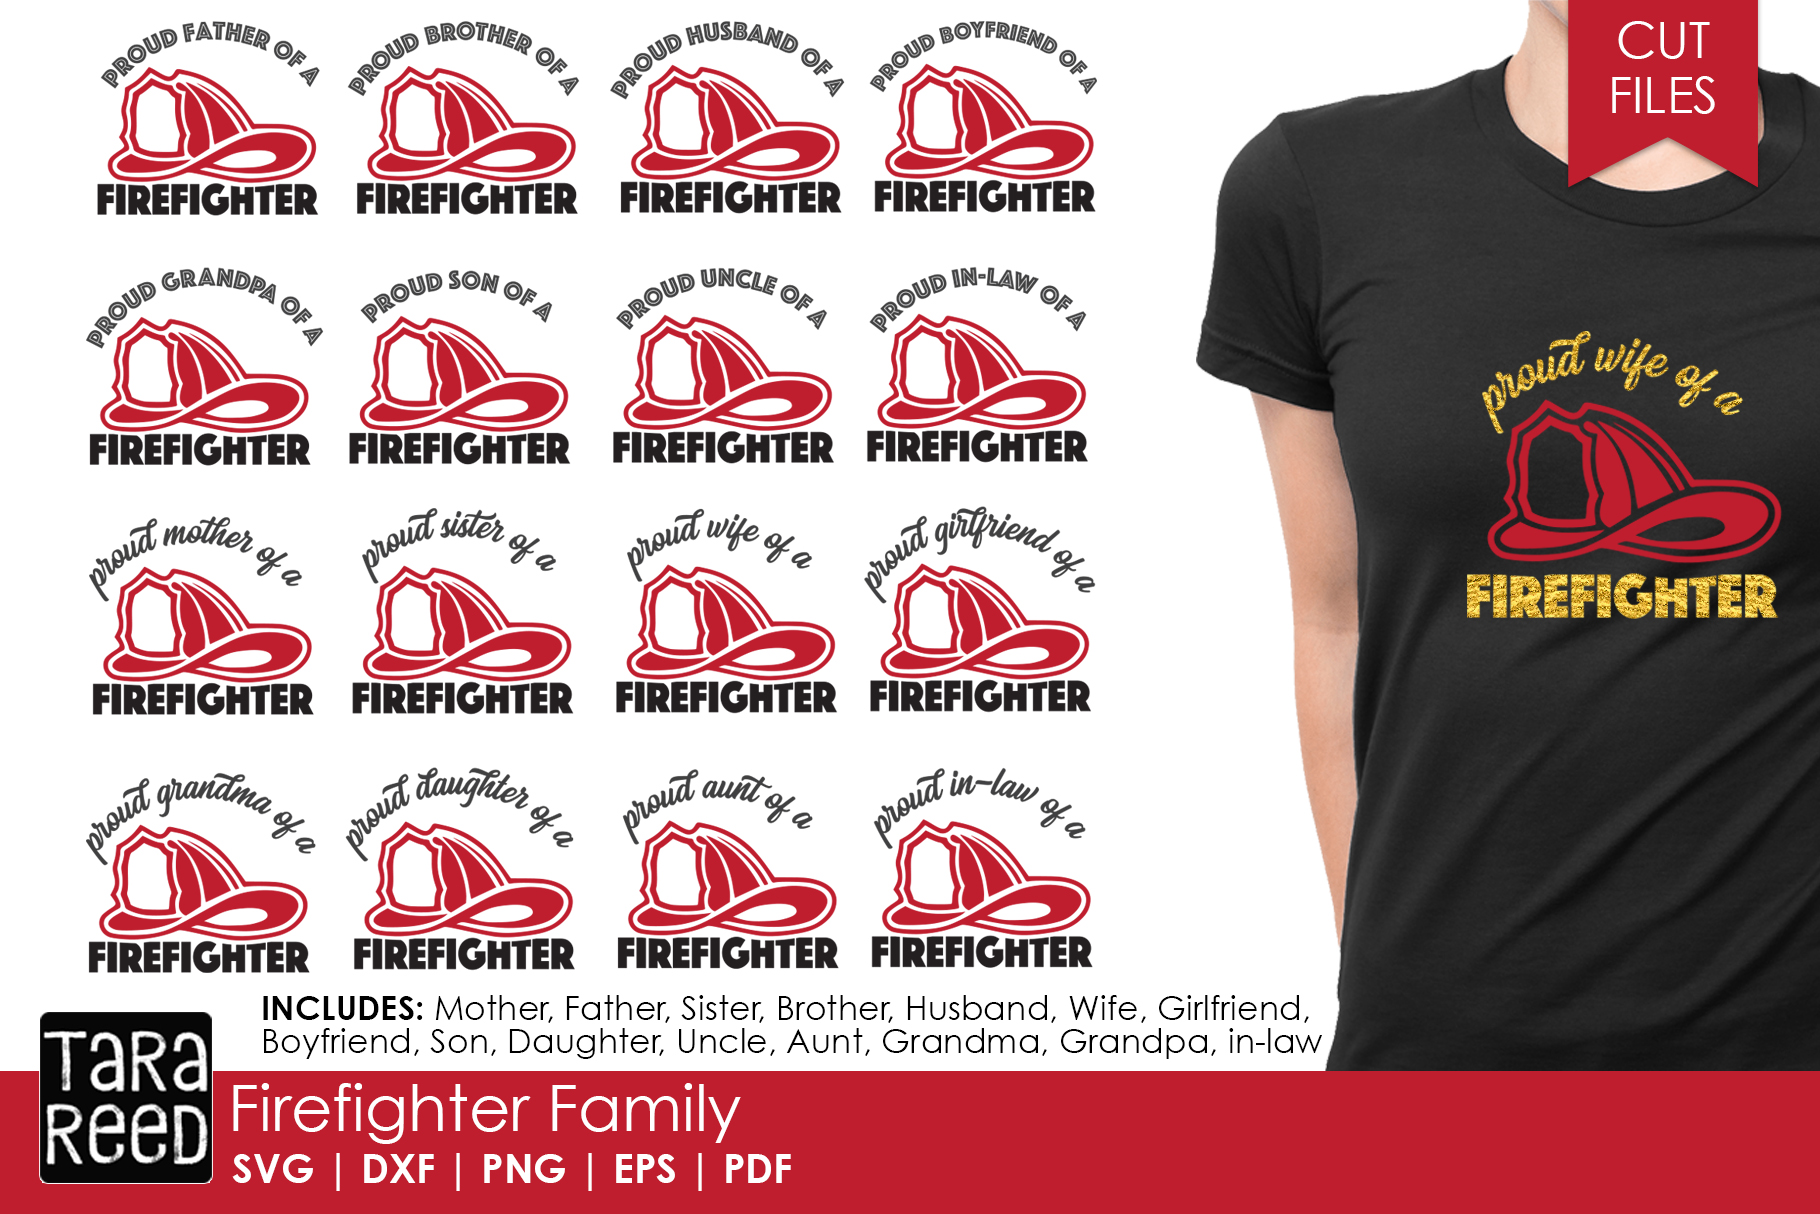 Firefighter Family - Firefighter SVG and Cut Files example image 1